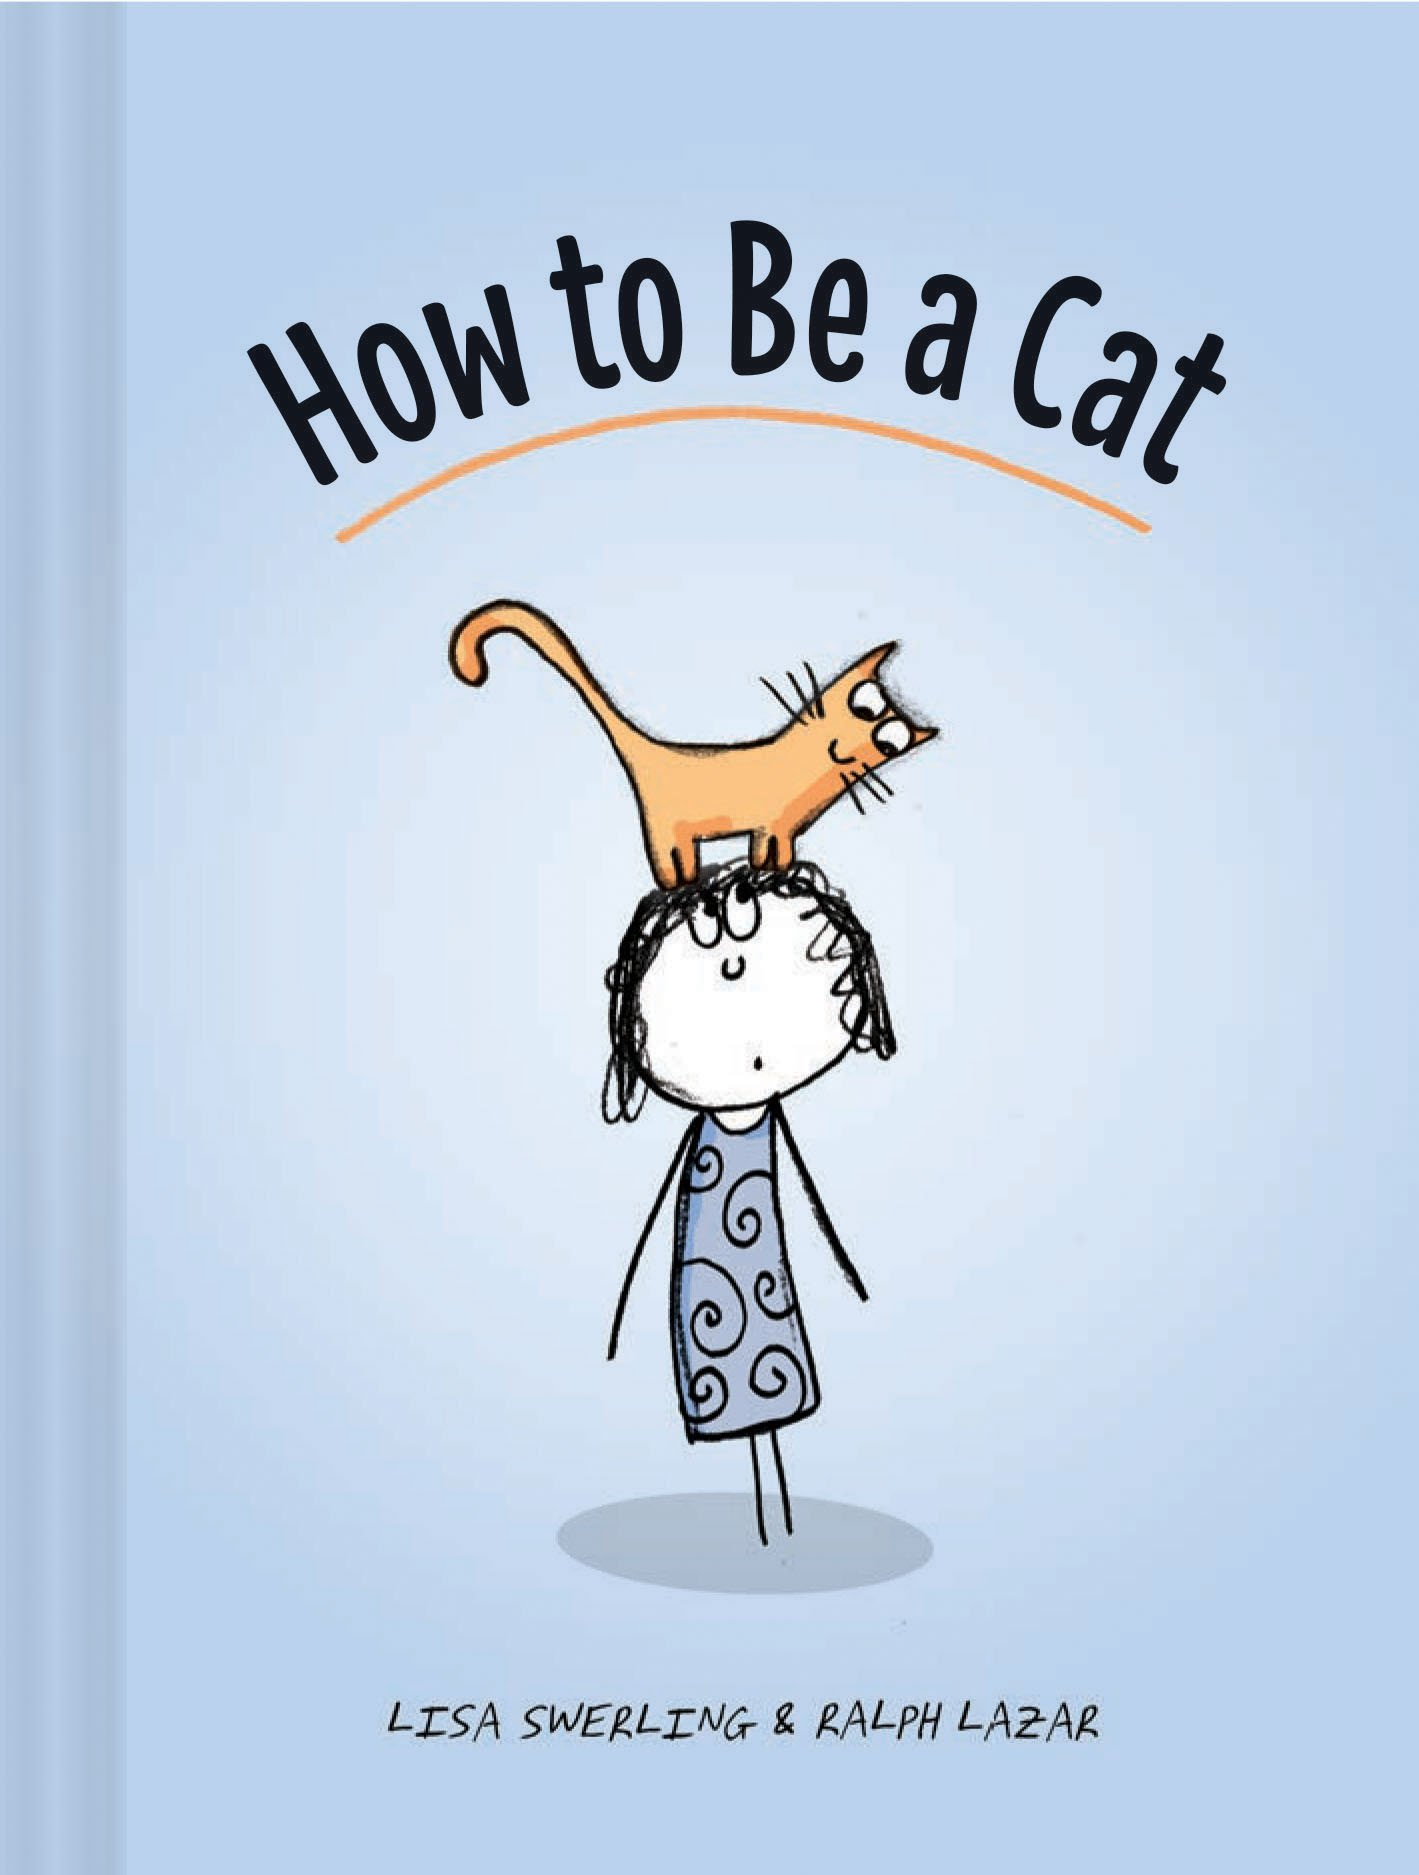 How to be a cat the definitive guide amazon co uk lisa swerling ralph lazar 9781452138923 books